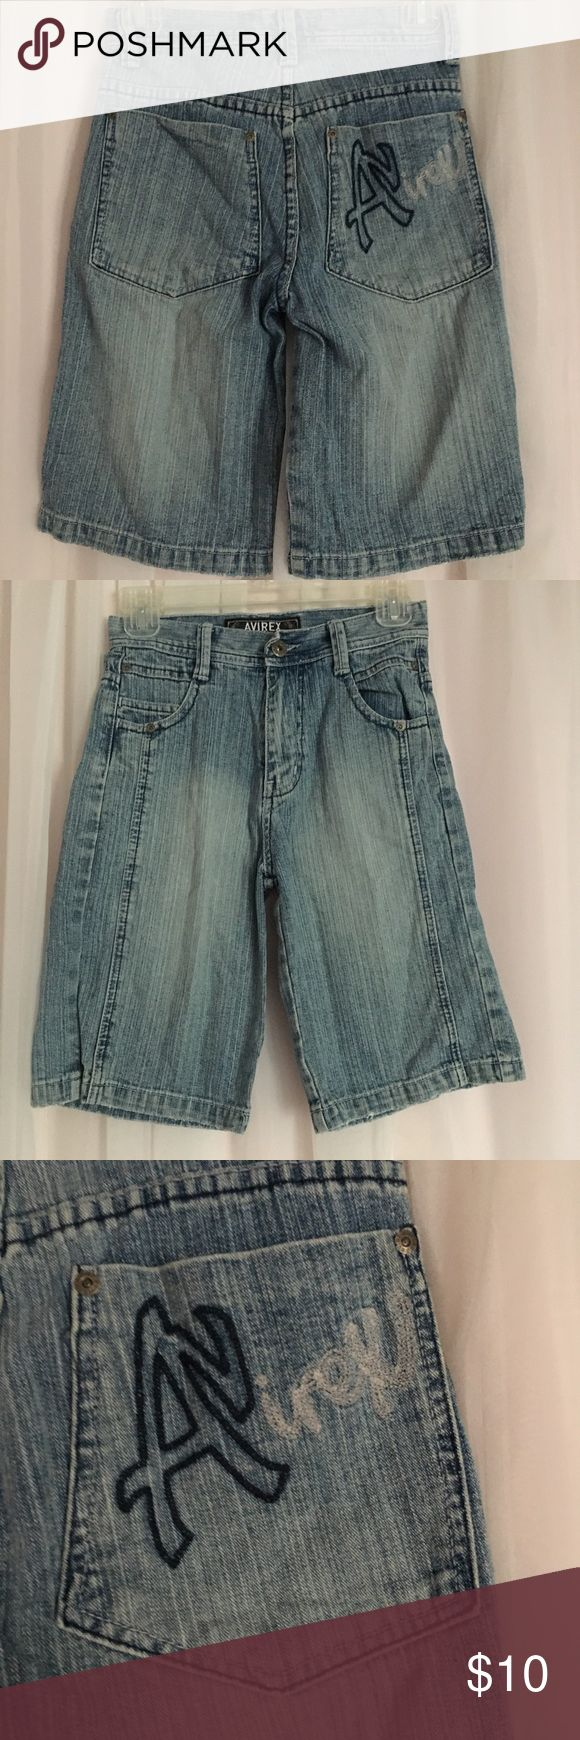 Avirex Boys Denim Blue Shorts Size 10 boys  Pre owned in great condition  waist- 12.5 inches length- 19 inches inseam- 10 inches  100% cotton Avirex Bottoms Shorts